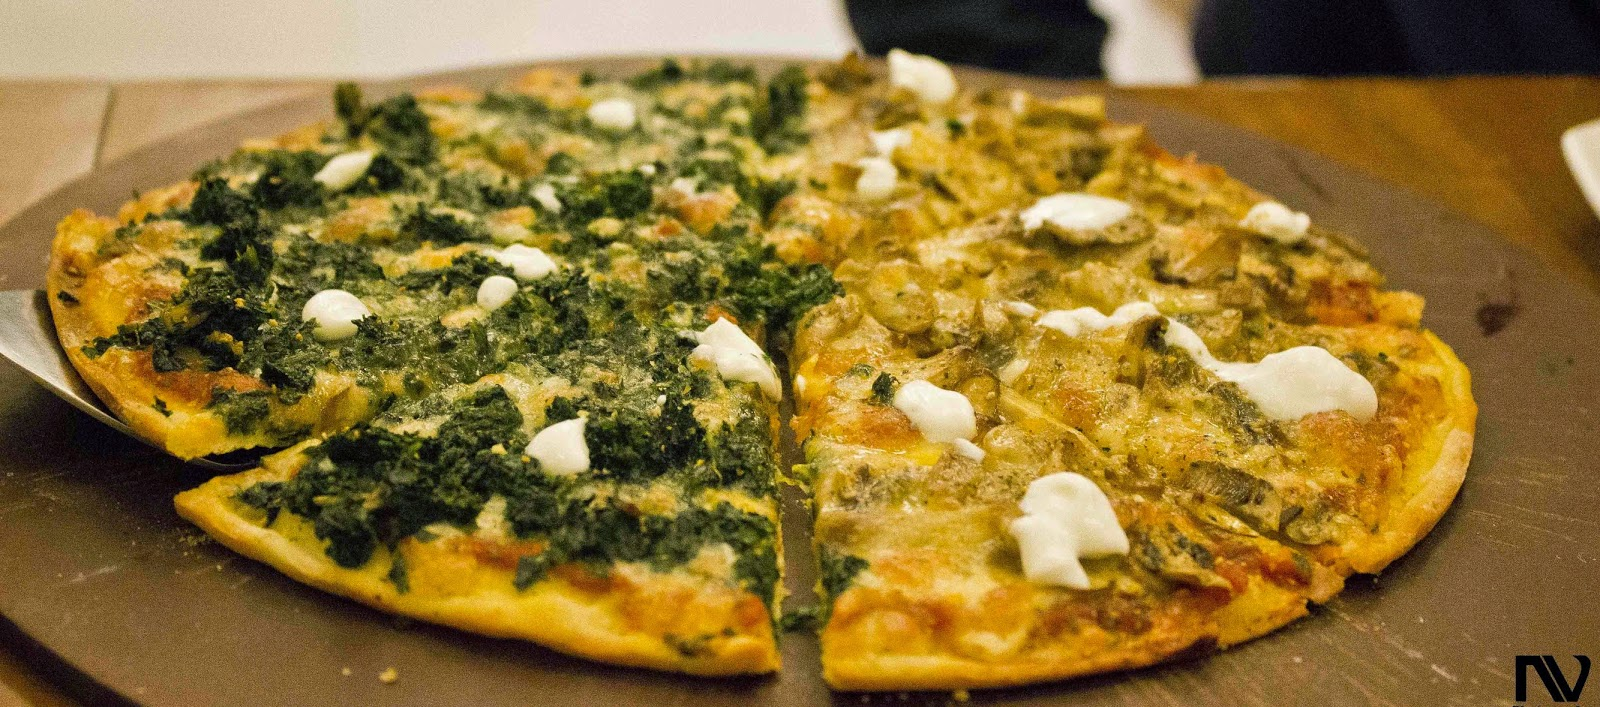 Spinach and Mushroom Pizza with Feta Cheese